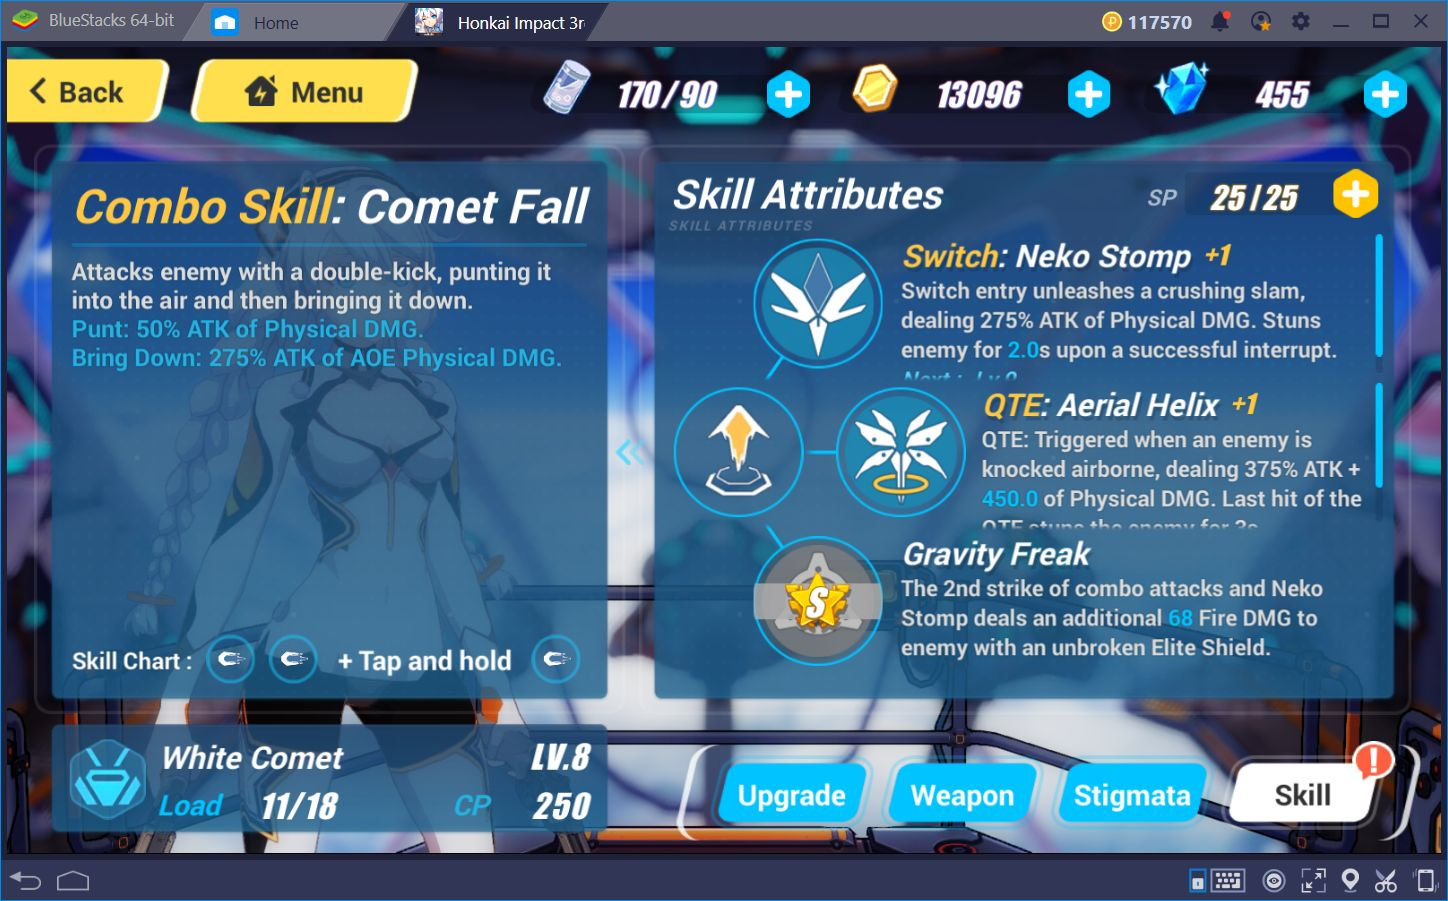 Combat Tactics for Honkai Impact 3rd